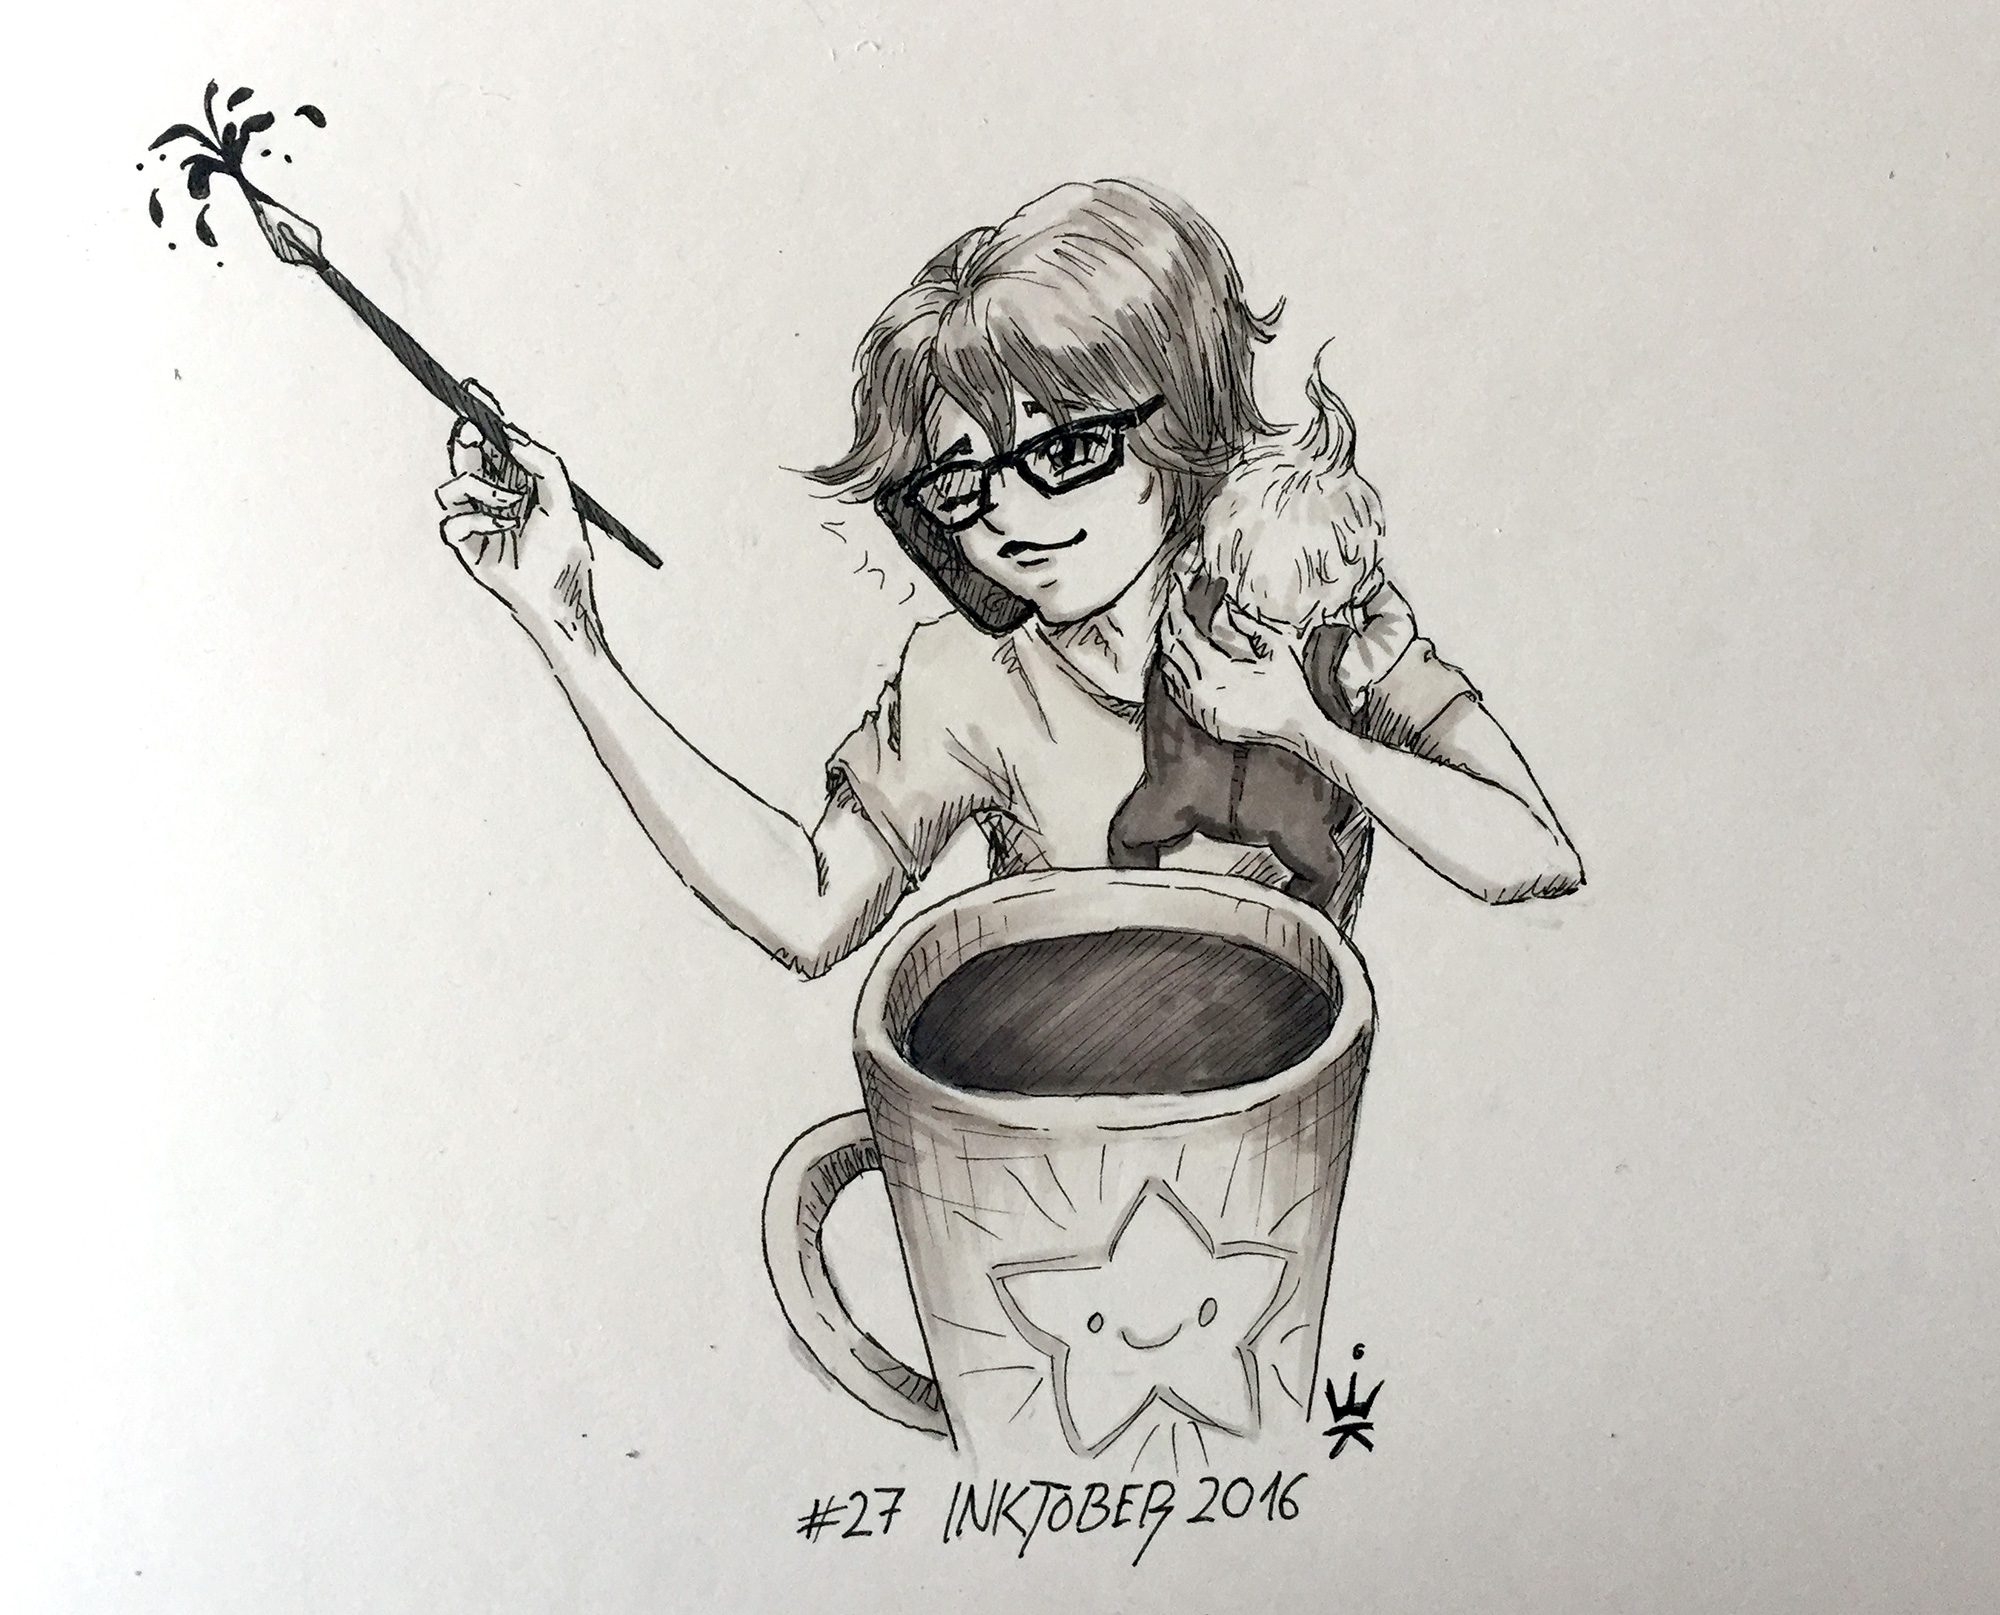 Inktober 2016 - 27: Self portrait (c) Esther Wagner